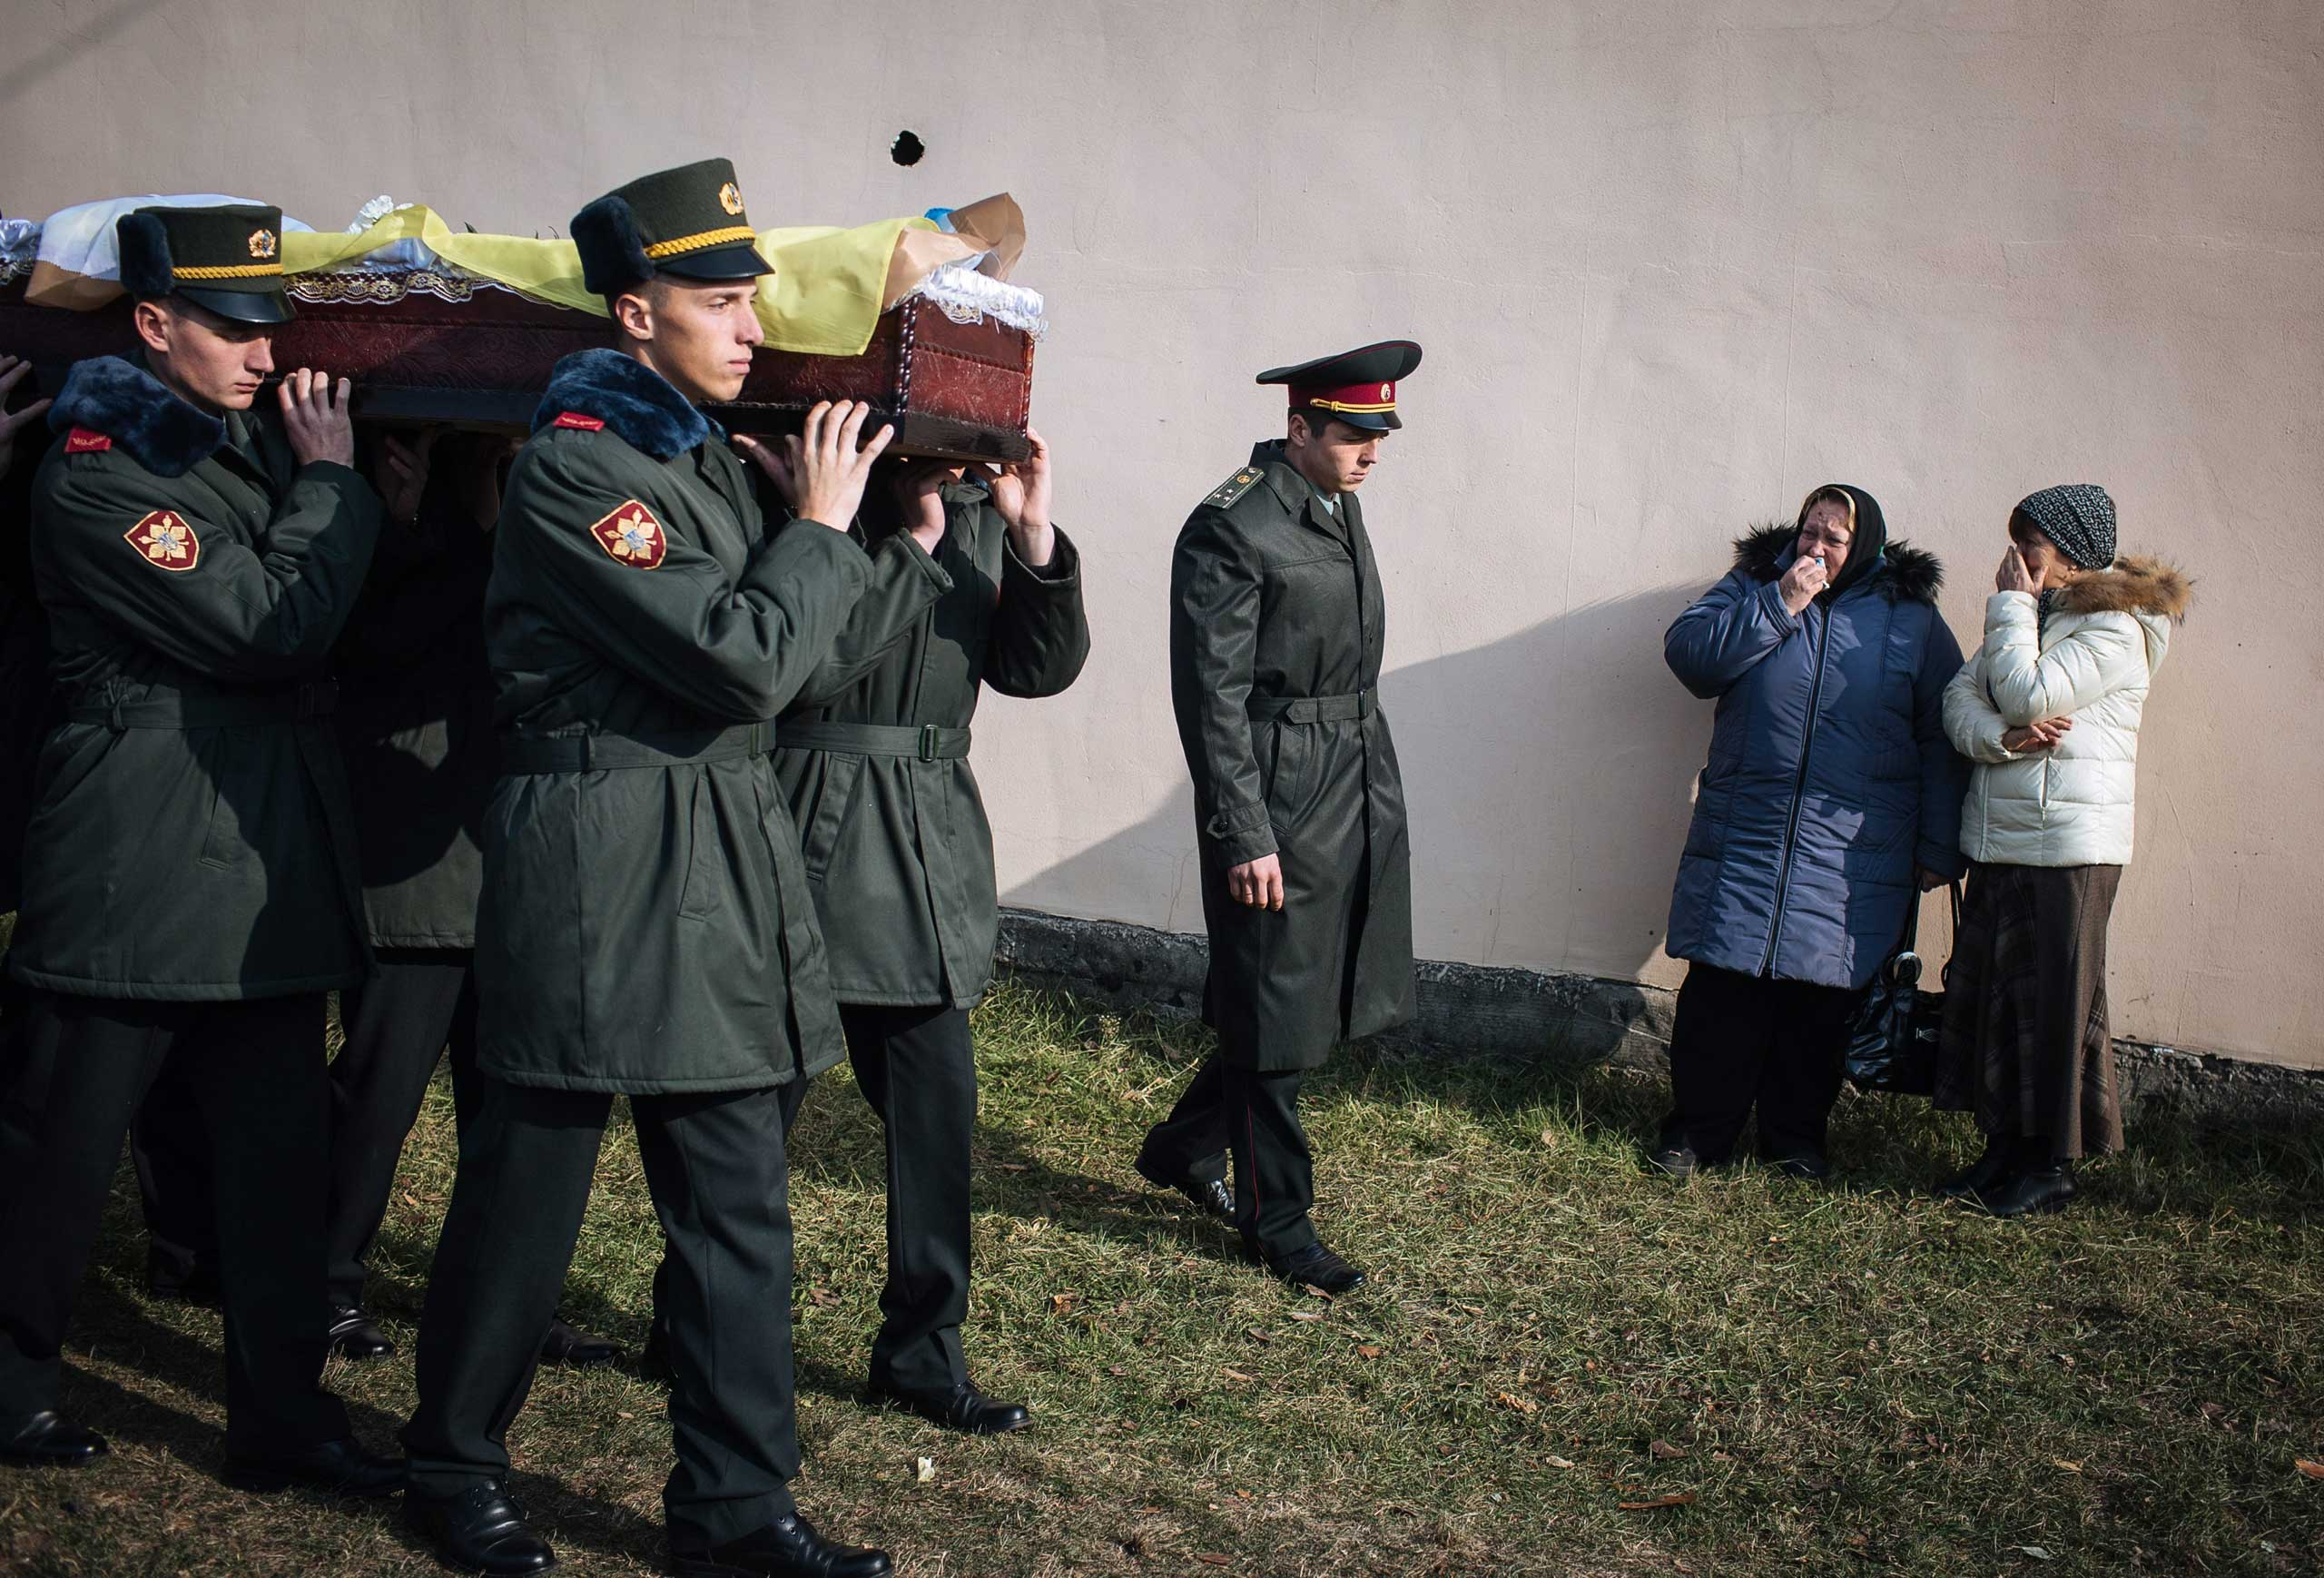 Oct. 31, 2014. Women react as soldiers carry a coffin with Fedor Lipchak, a Ukrainian serviceman of the Aidar Battalion who was killed in eastern Ukraine, during a funeral ceremony in Gurovschina village near Kiev, Ukraine.